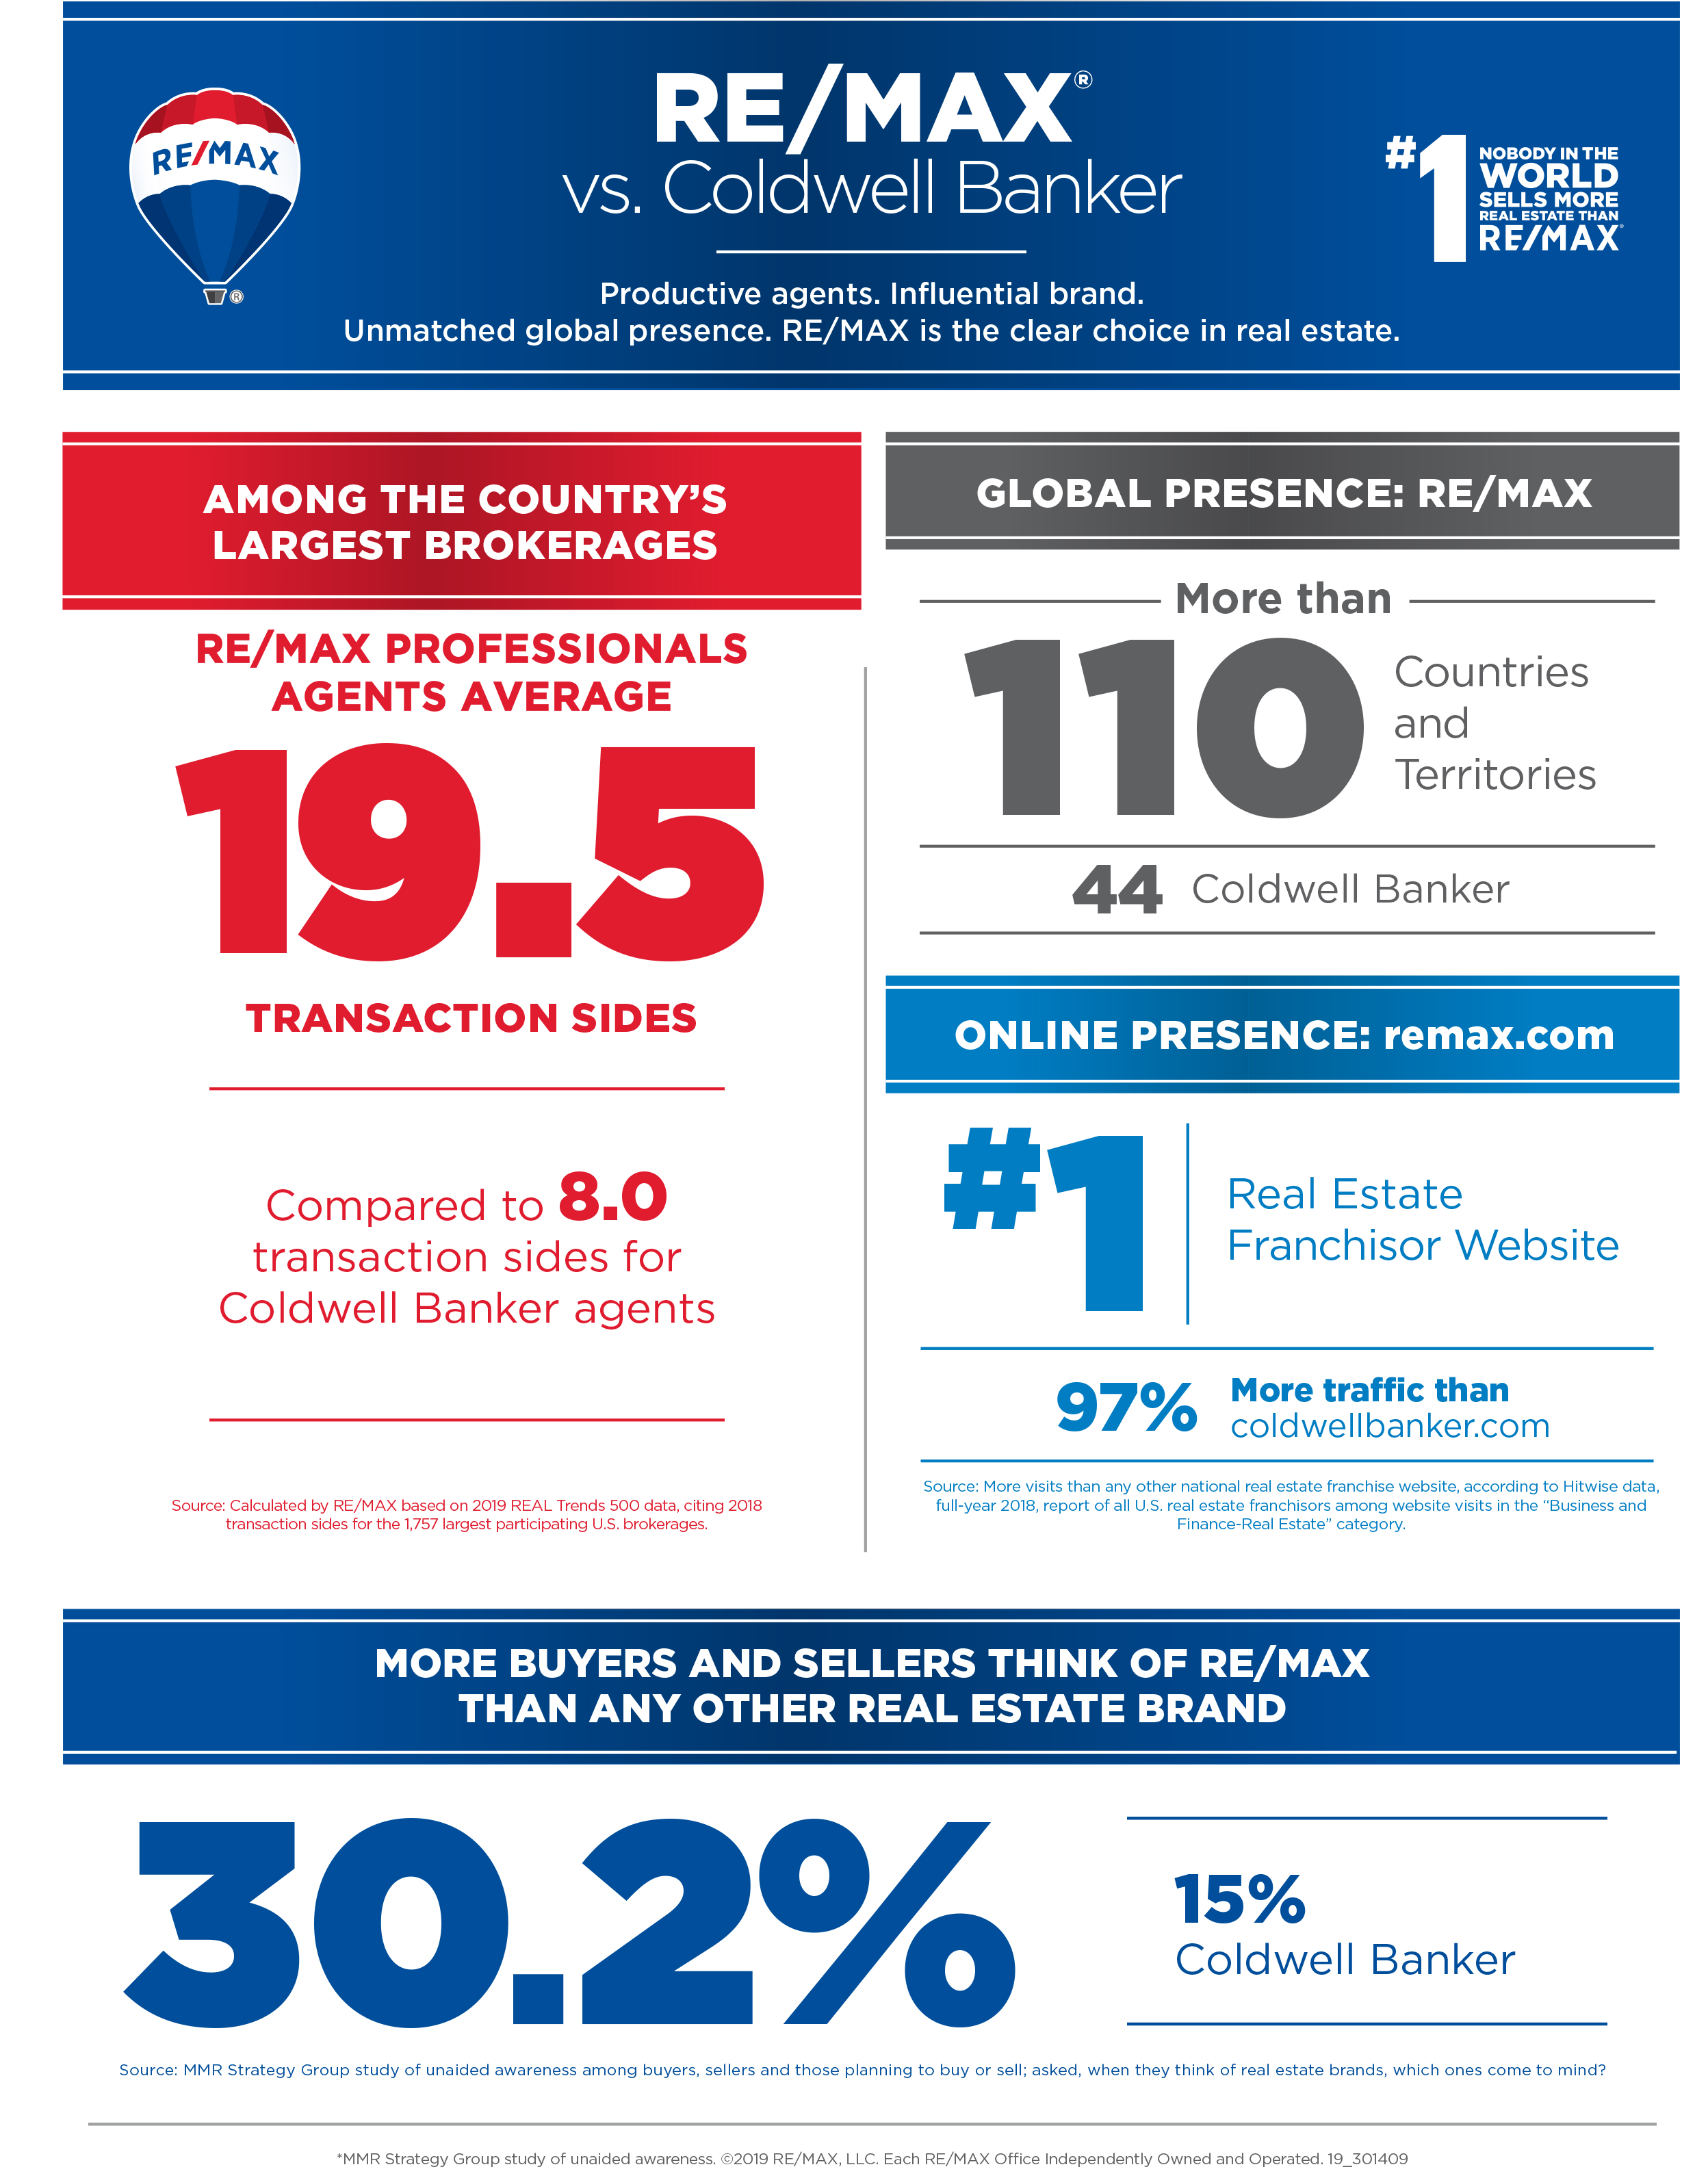 Remax vs Coldwell Banker